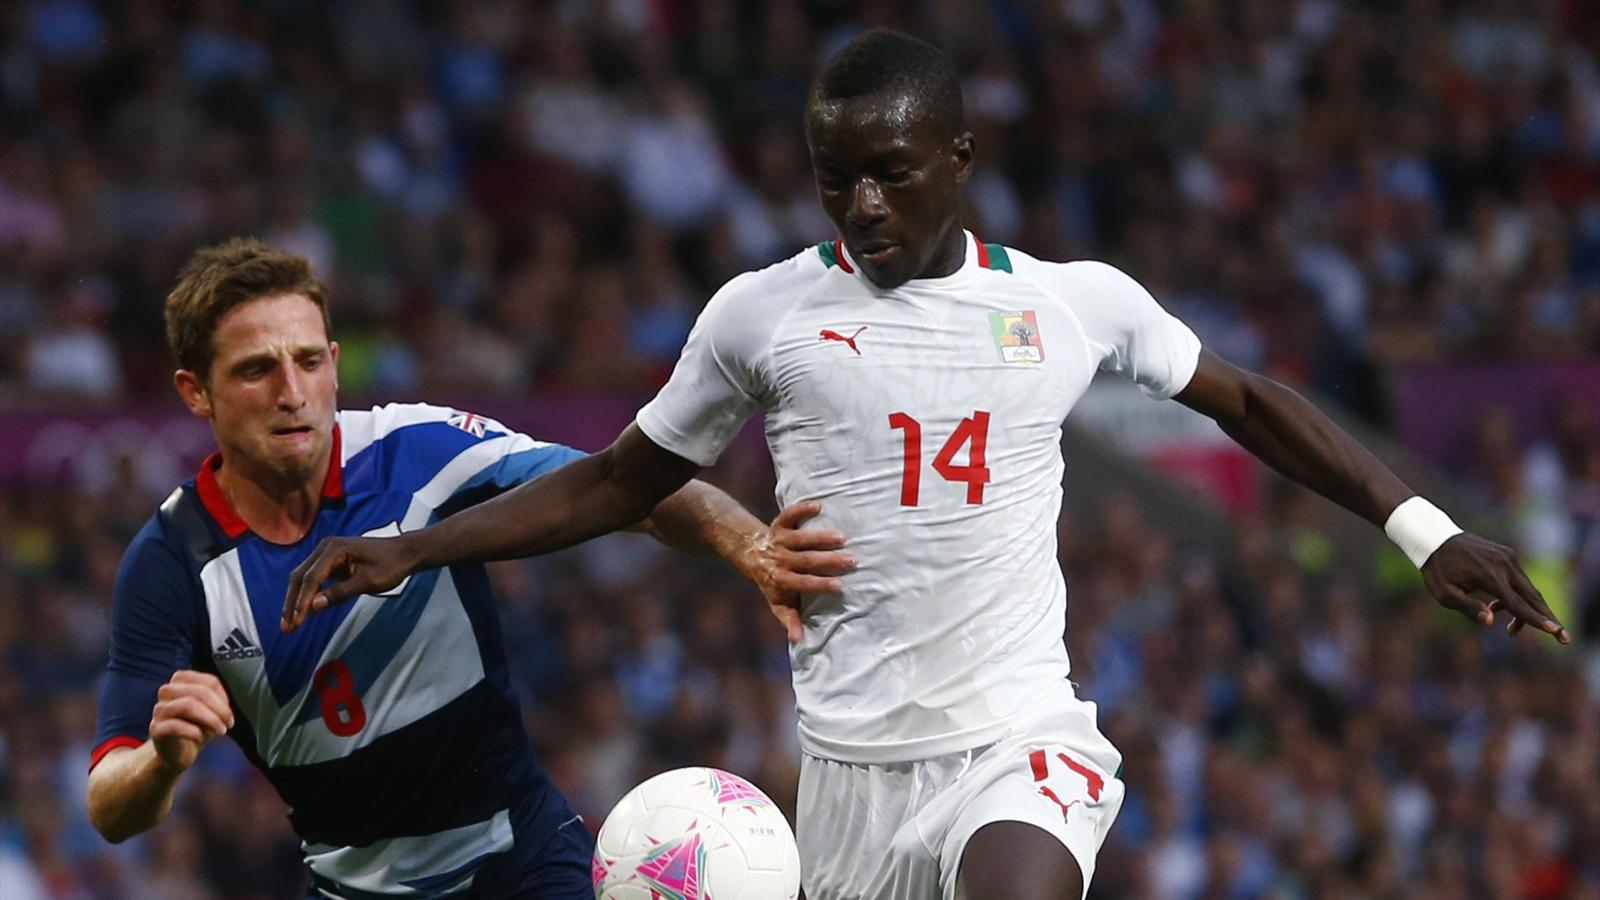 Britain's Joe Allen (L) fights for the ball with Senegal's Idrissa Gueye during at the London 2012 Olympic Games